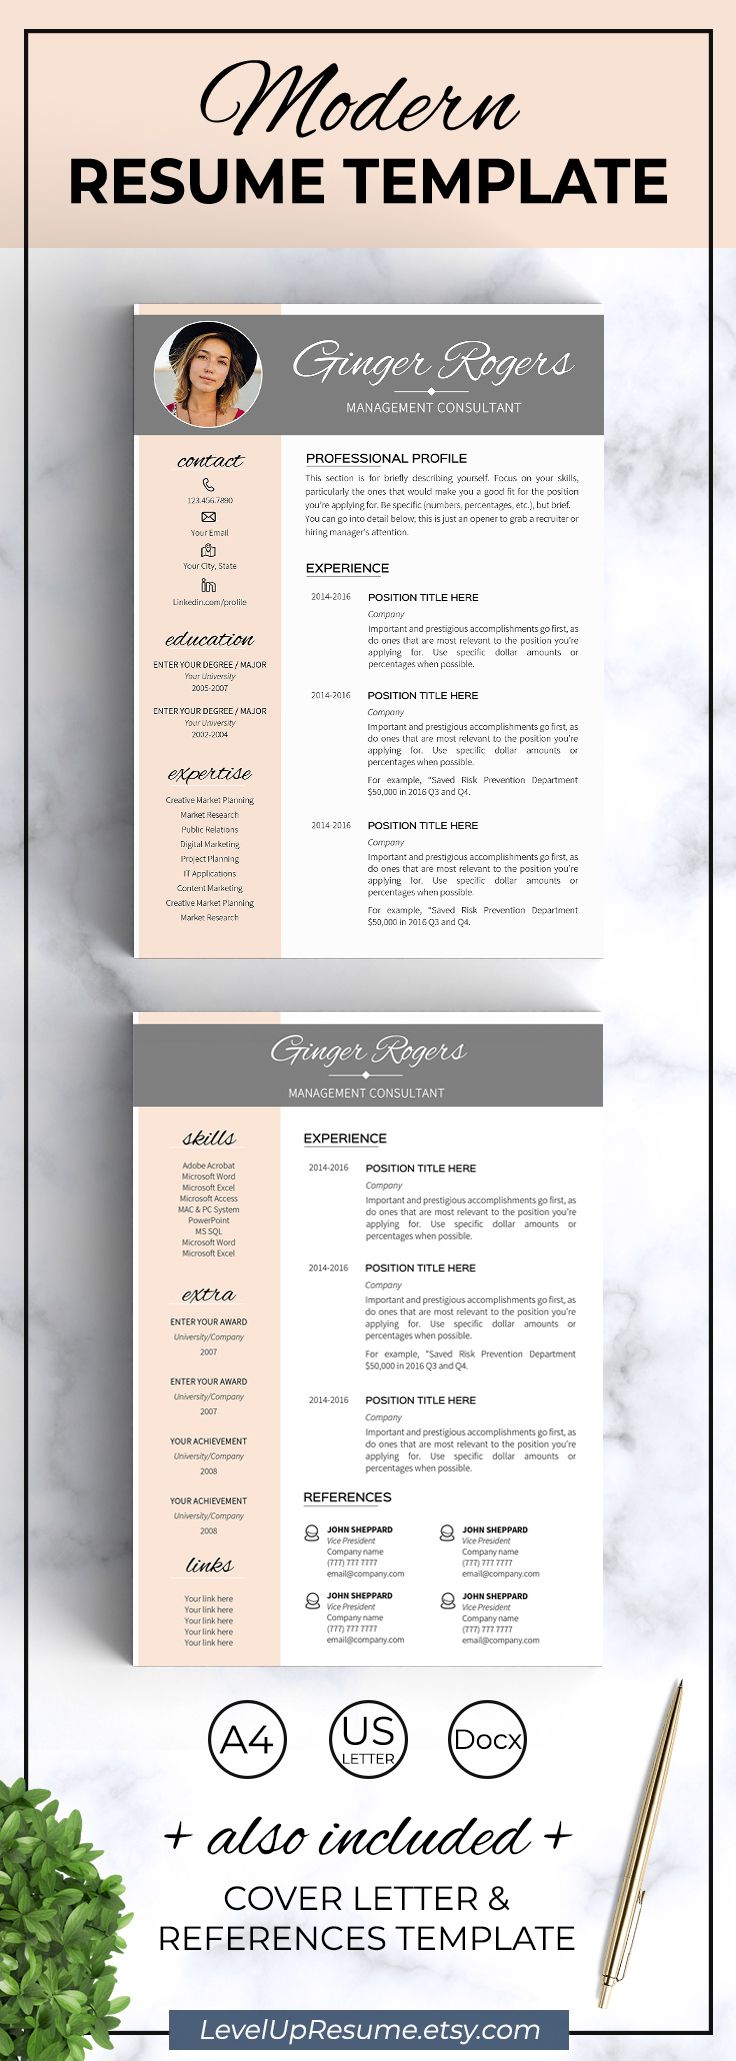 Modern resume template. Professional resume design. Career advice. Job search. Get hired!  Click on the link or save the pin to your board >>>>> #career #career advice #job #jobsearch #resume #resumetemplate   . Resume template instant download - Feminine resume templates word